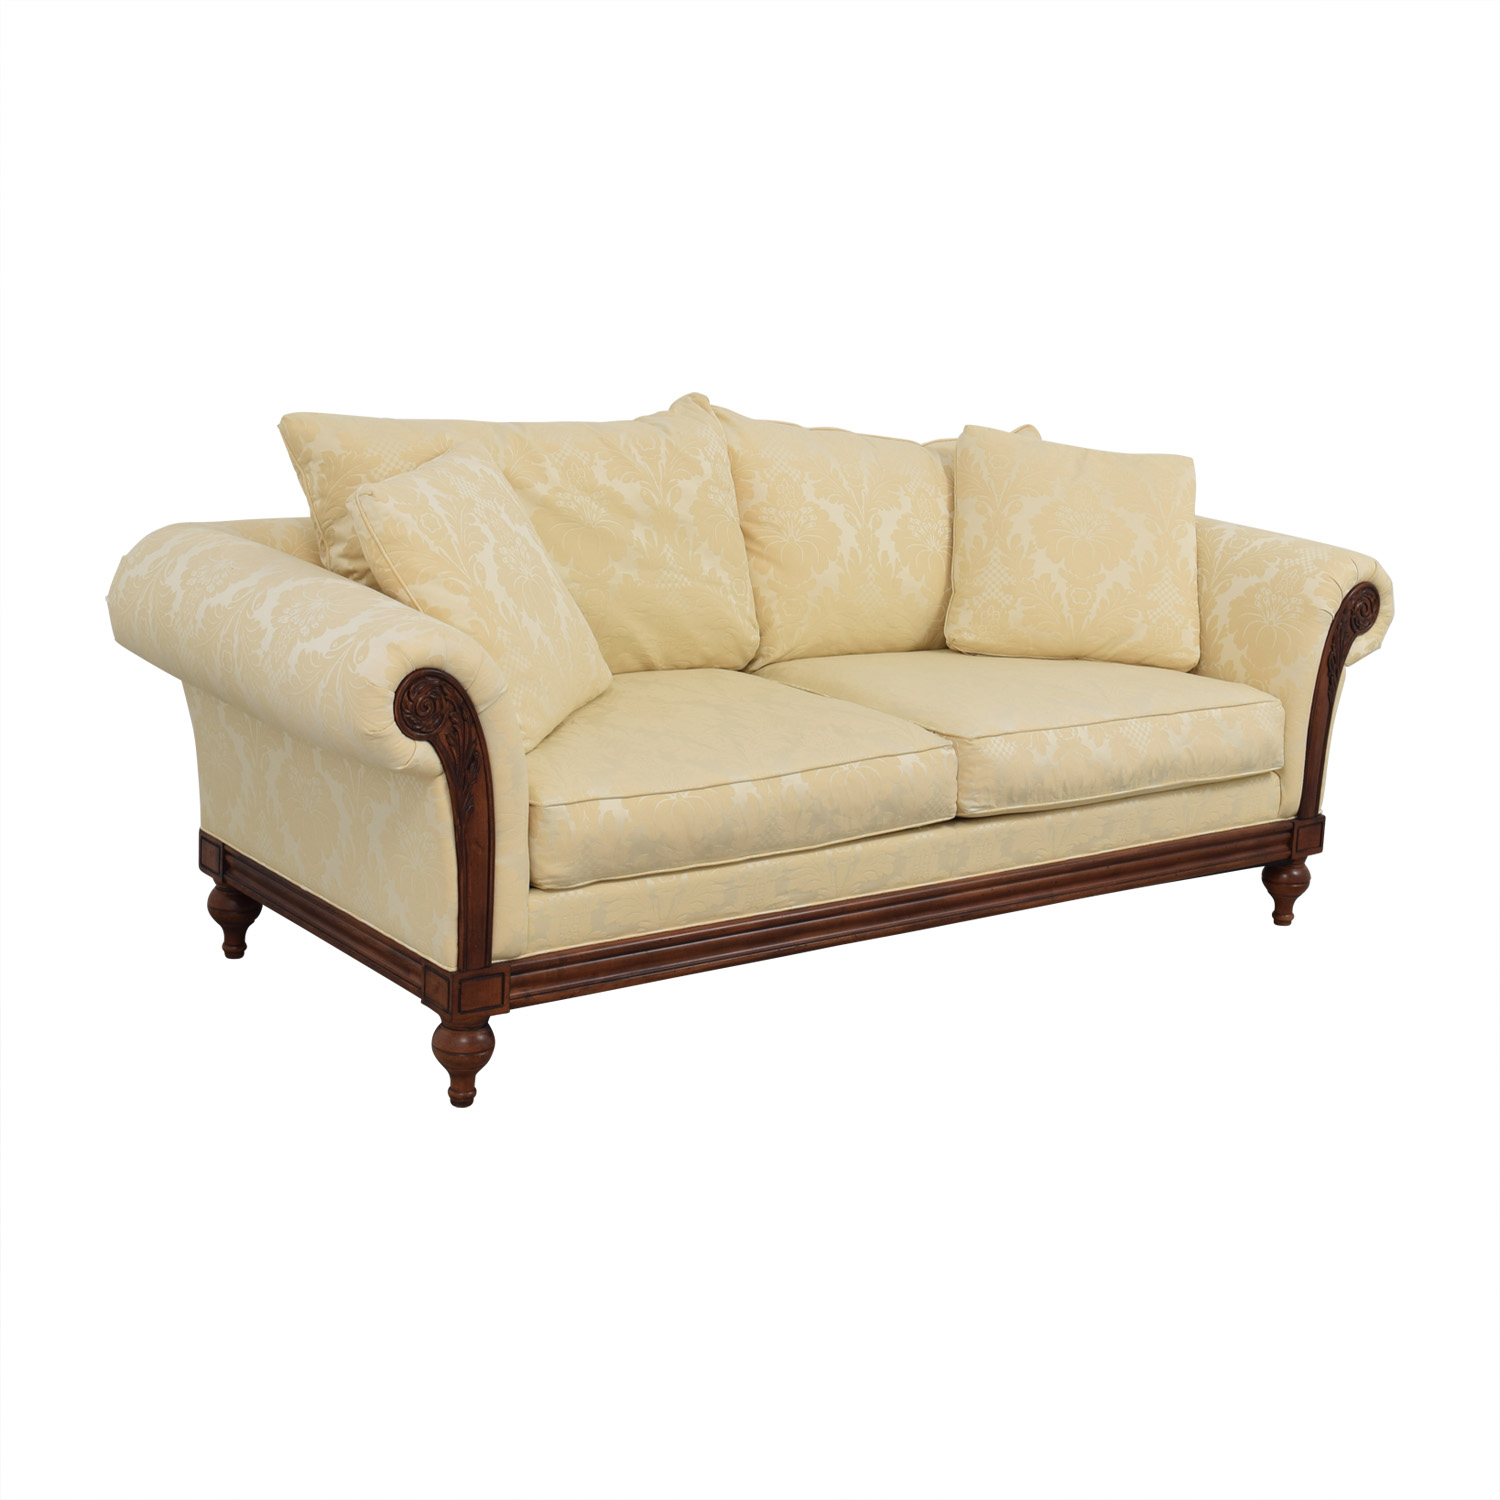 Ethan Allen Ivory Jacquard Sofa with Wood Frame / Sofas